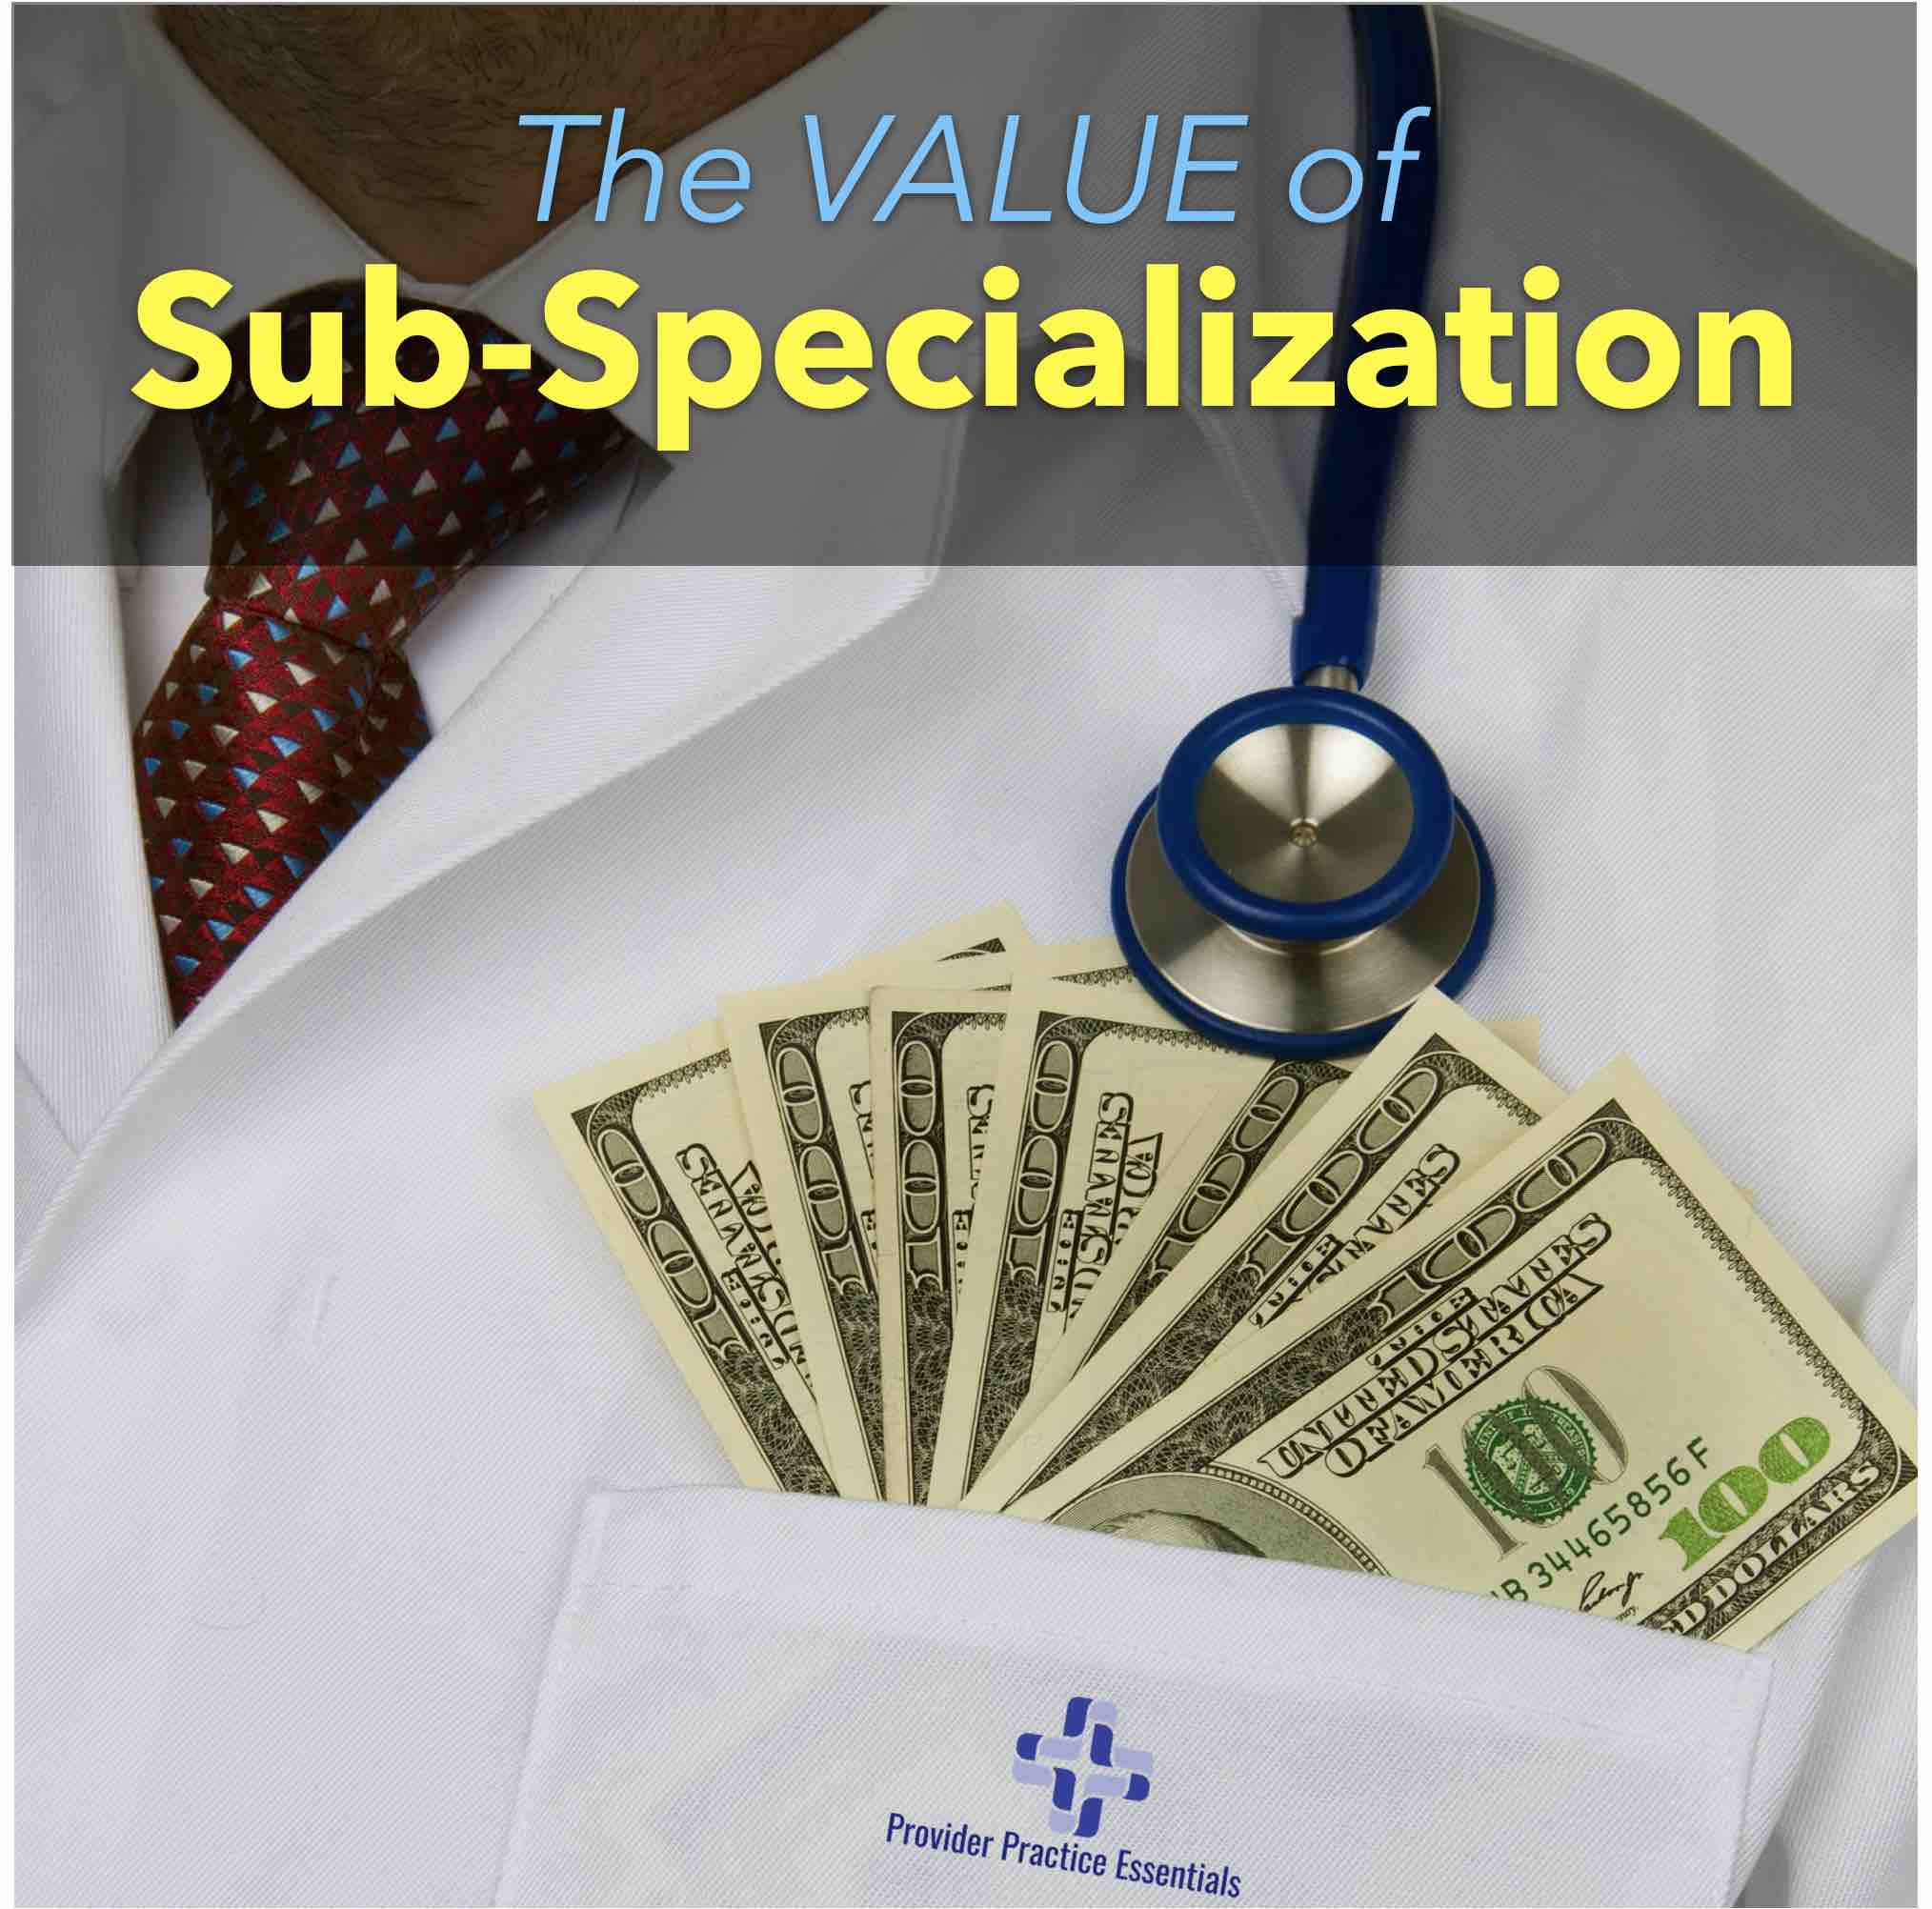 The Value of Subspecialization